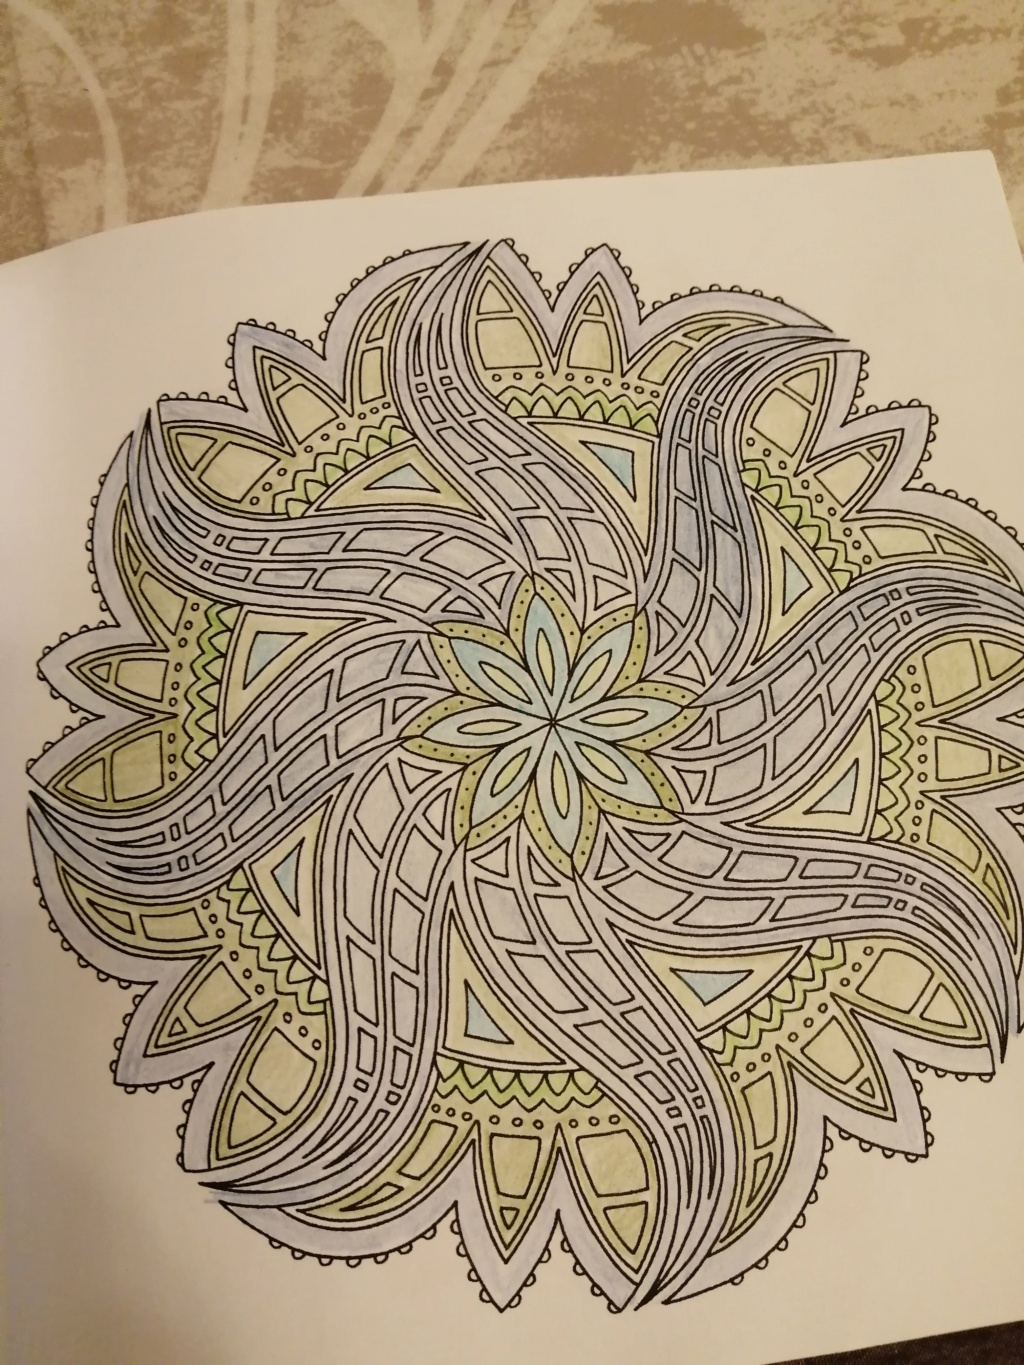 coloriage anti-stress pour adulte - Page 16 00613